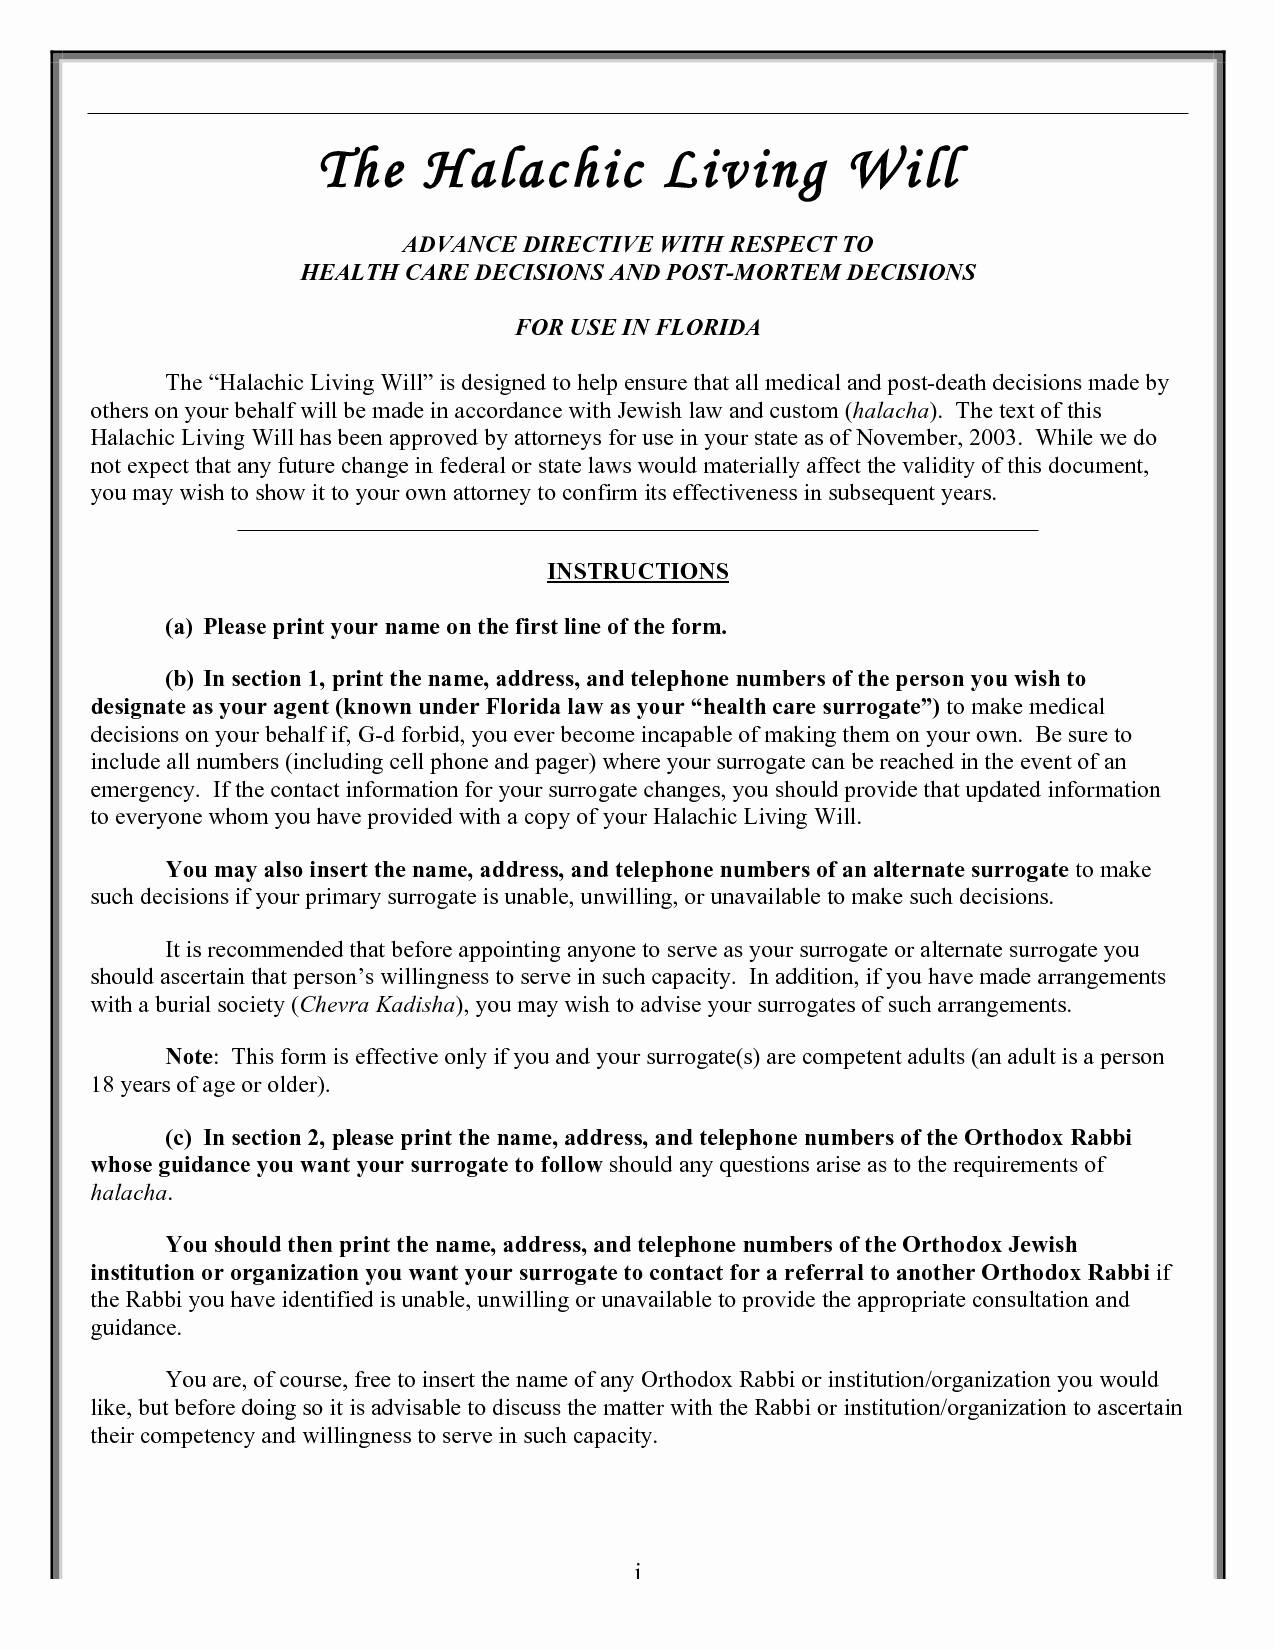 Estate Planning Letter Of Instruction Template - Living Trust Templates Fresh Florida Living Will Requirements Free